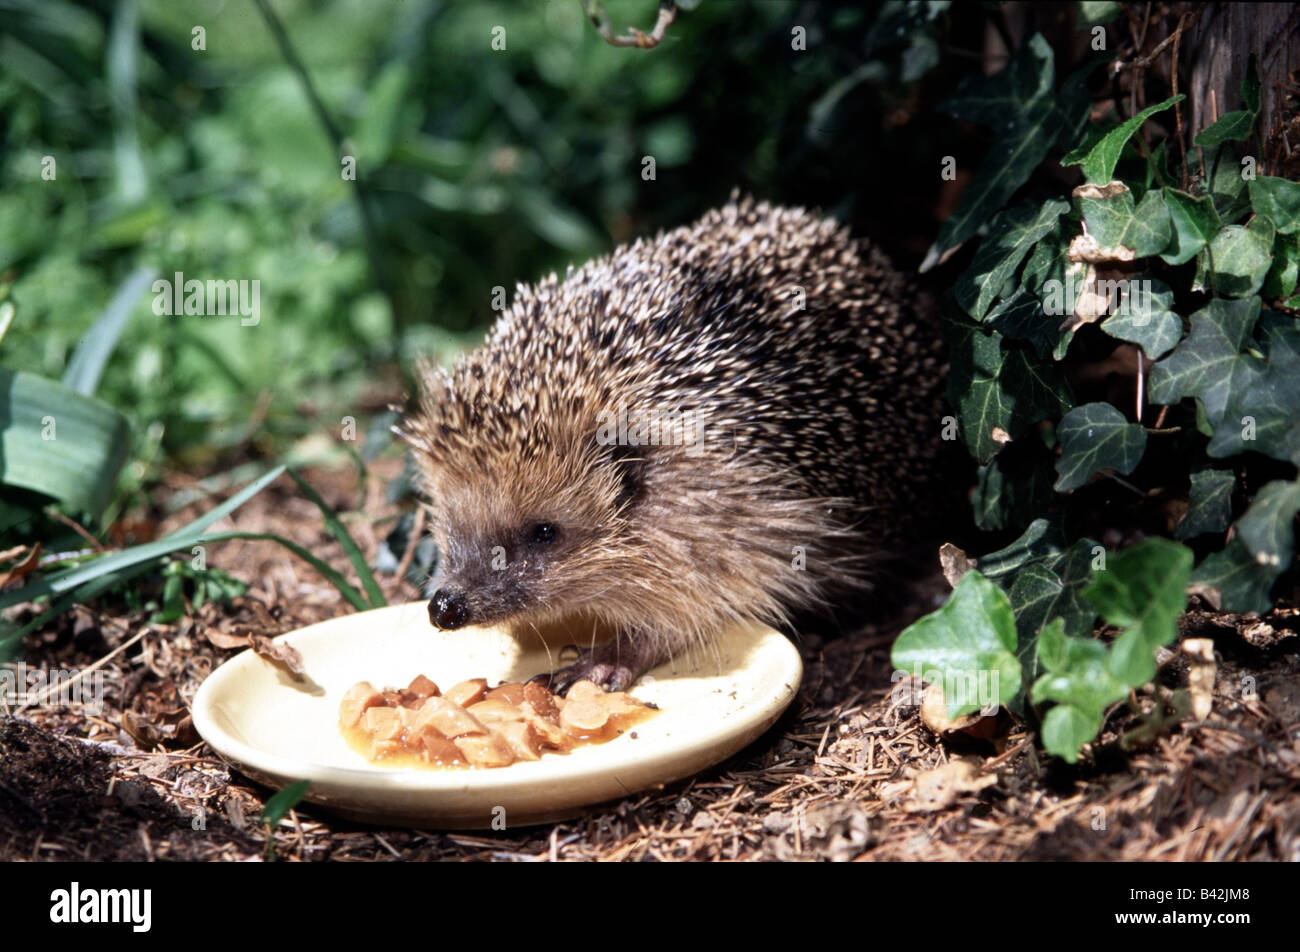 zoology / animals, mammal / mammalian, hedgehog, (Erinaceus europaeus), young hedgehog eating from plate, distribution: - Stock Image